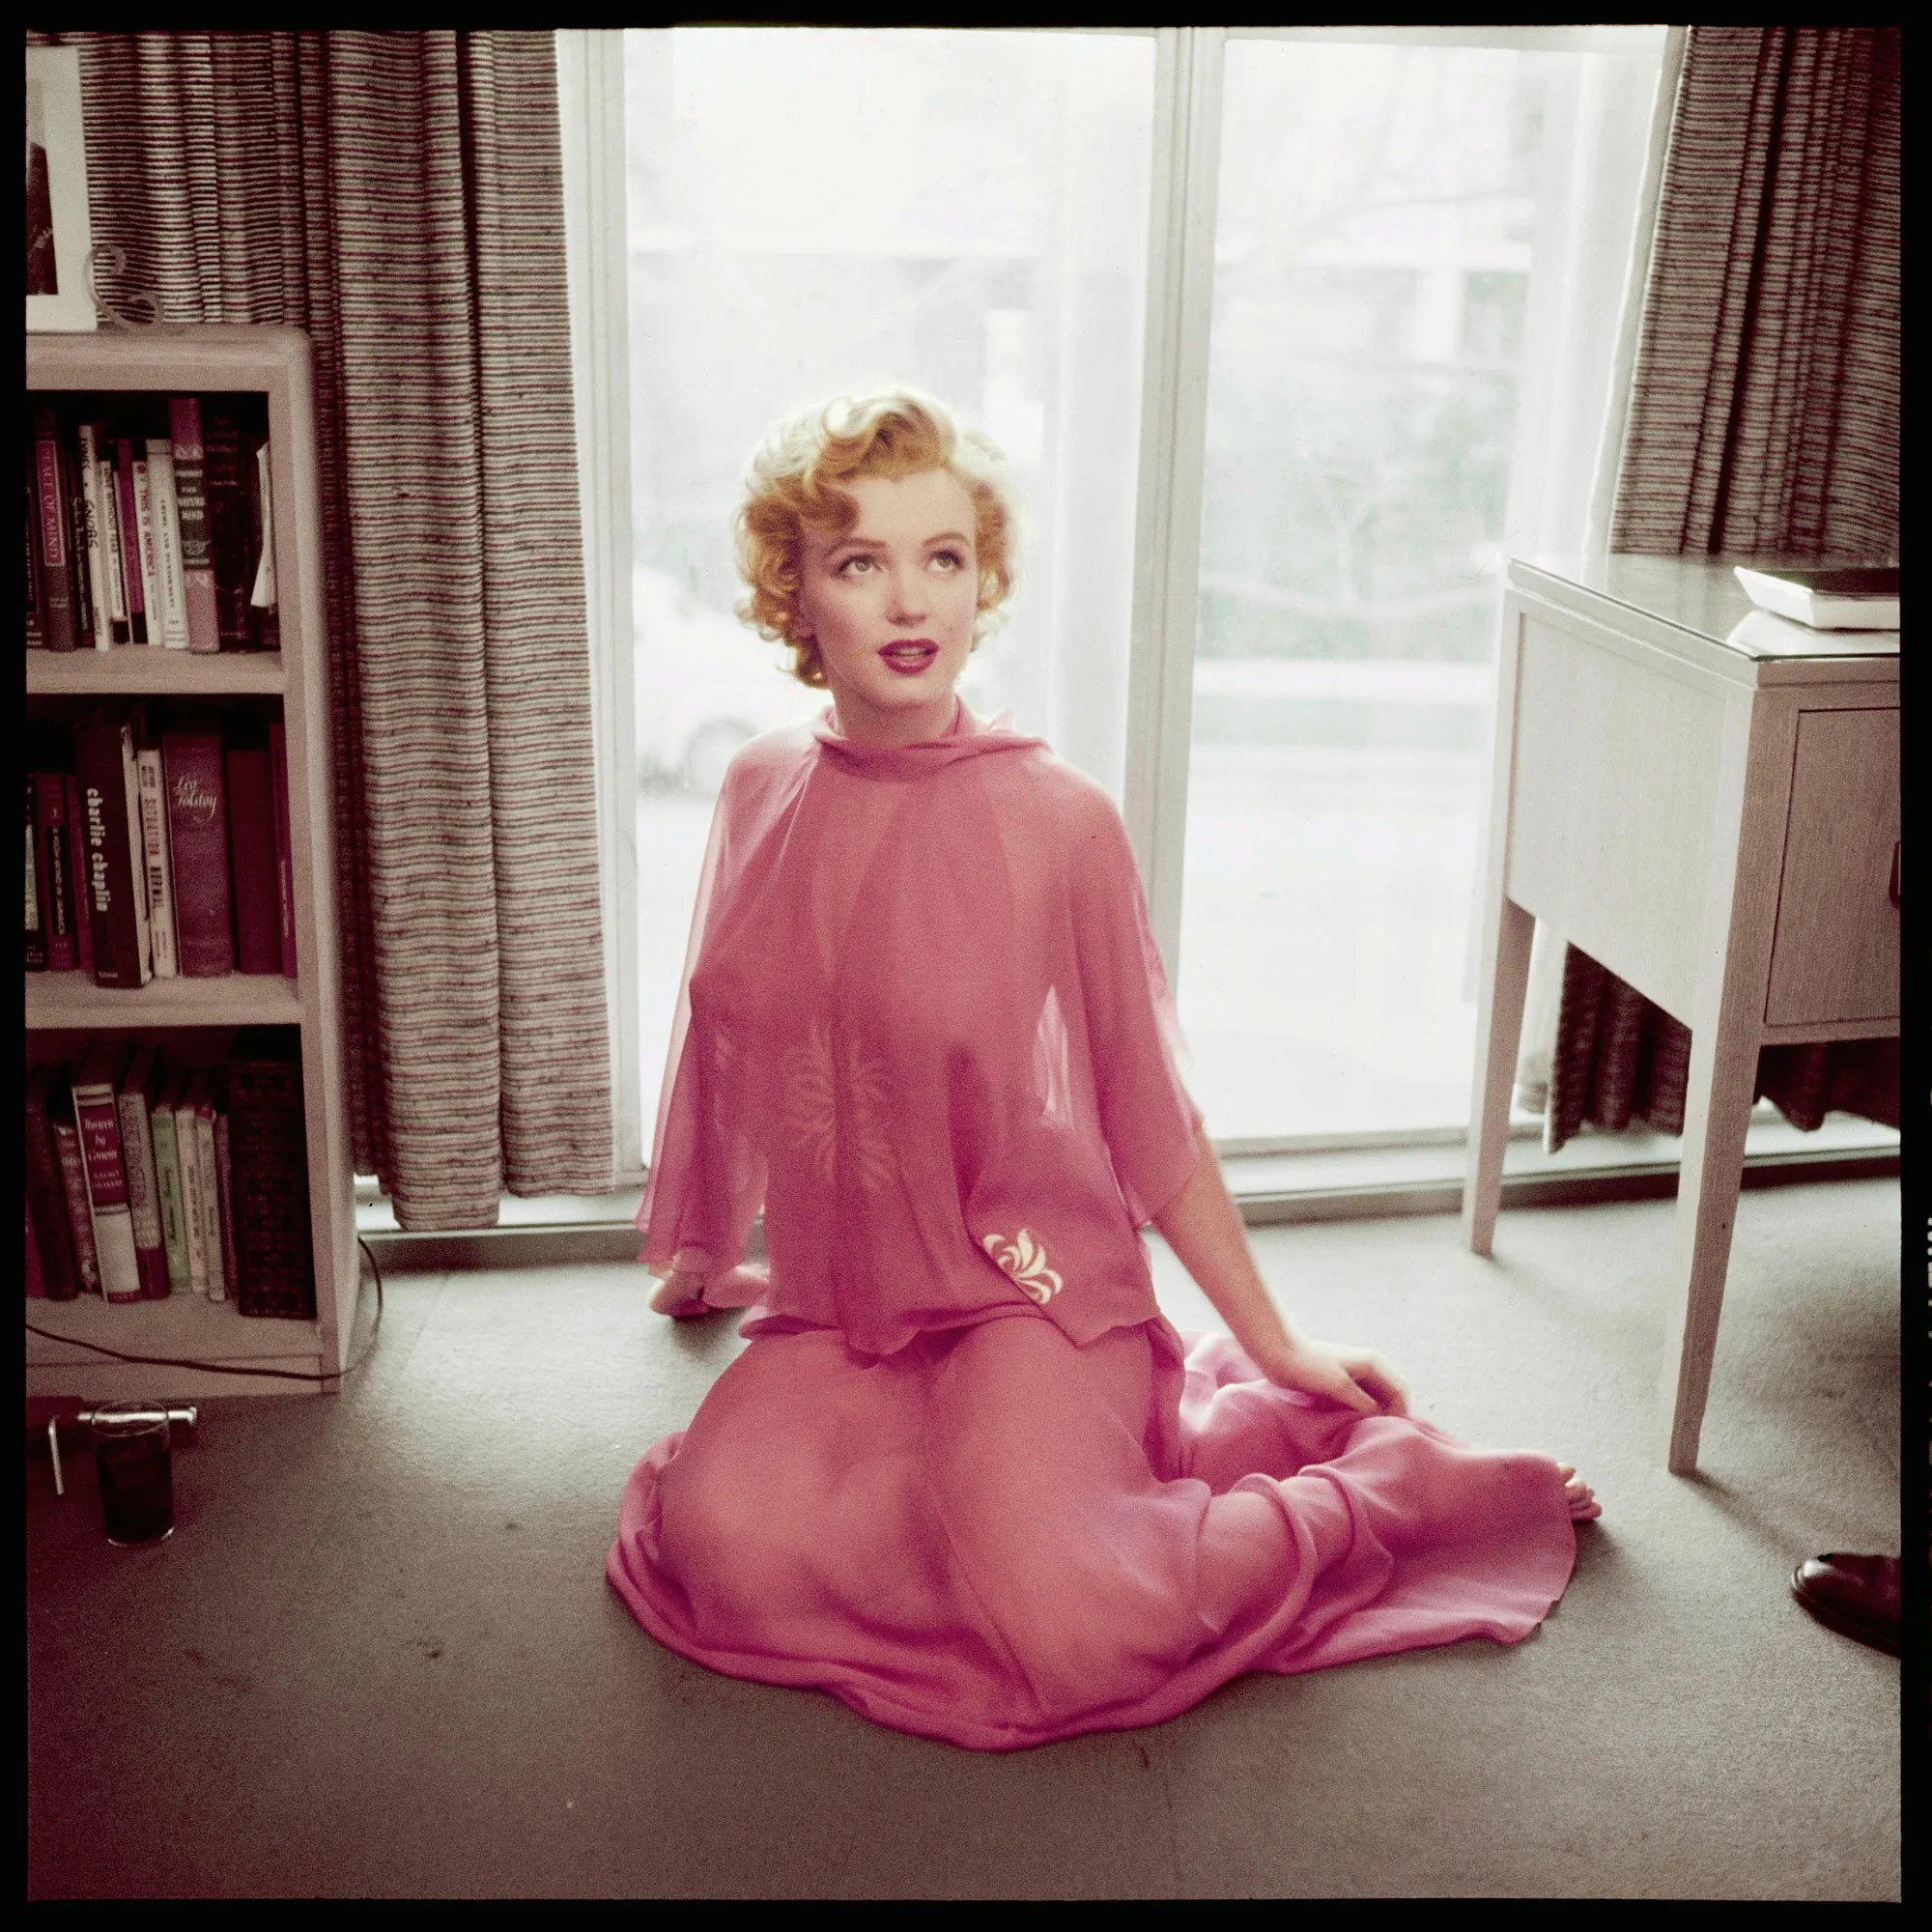 Marylin Monroe Marilyn Monroe 5 Things You Didn T Know Vogue